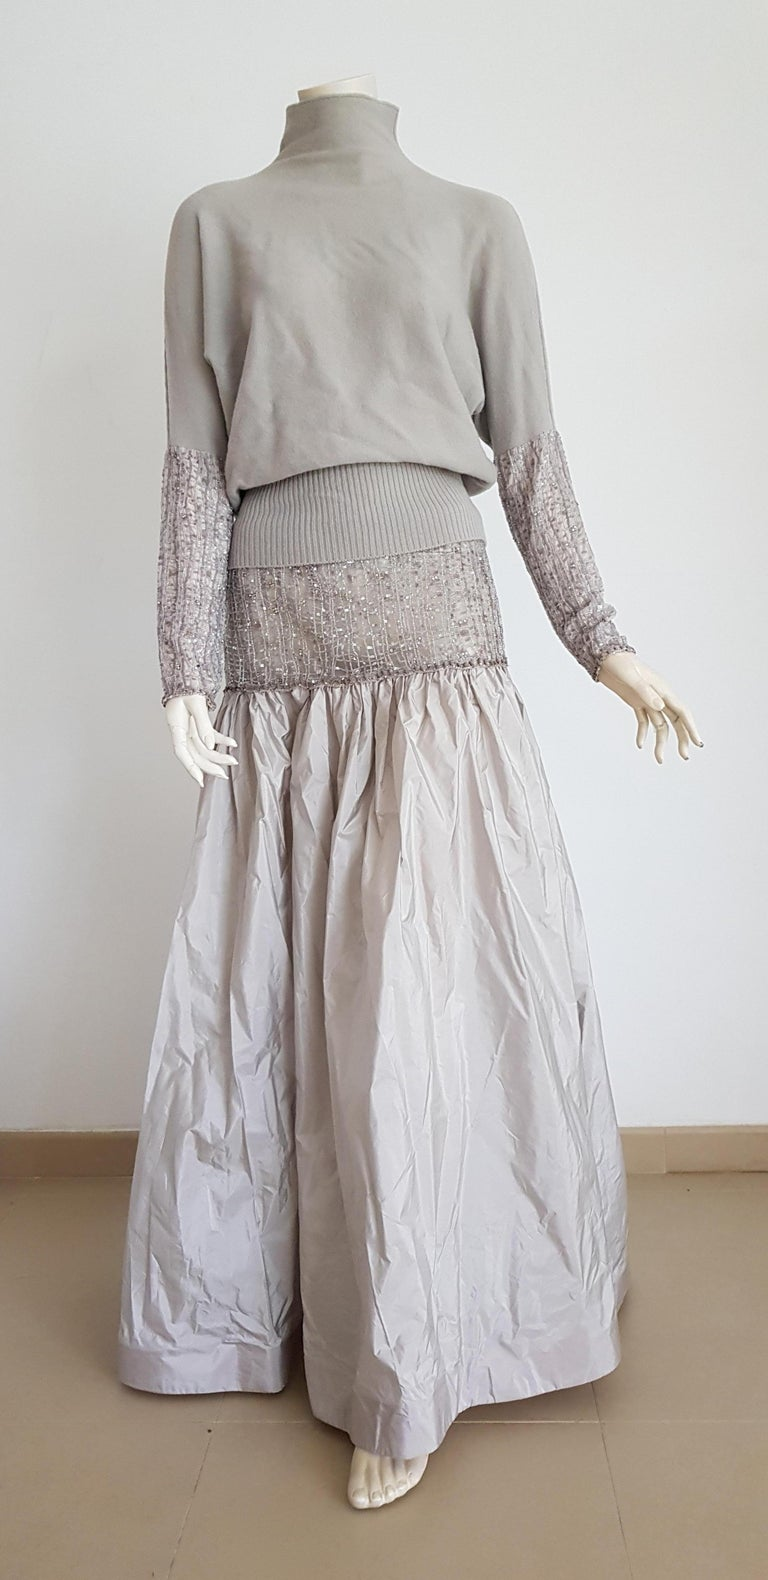 VALENTINO swarovsky diamonds set, top-sweater and skirt with embroidery beads, in cashmere and silk, elegant grey dress - Unworn, New with tags  SIZE: equivalent to about Small / Medium, please review approx measurements as follows in cm.  TOP: